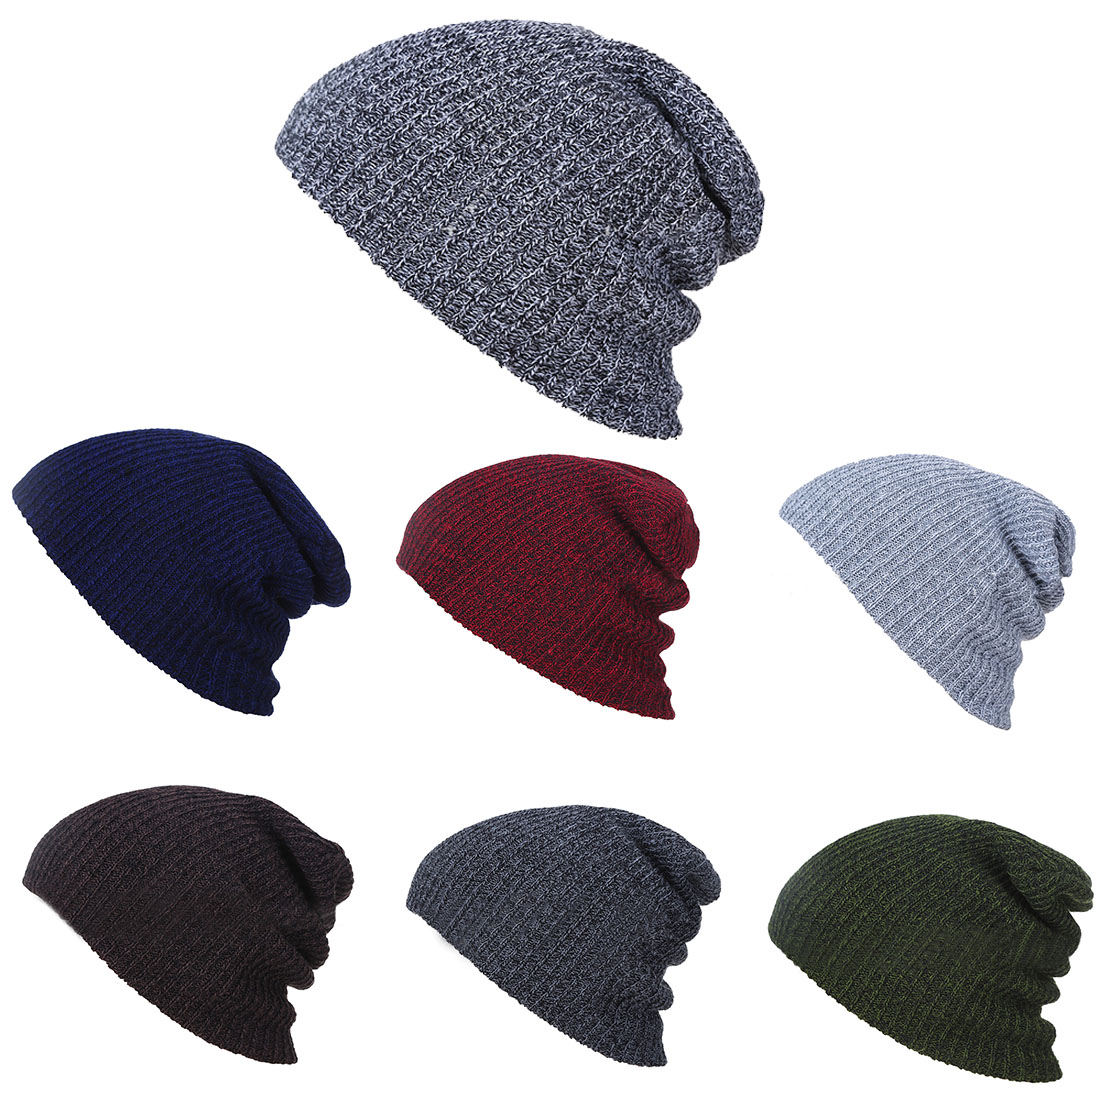 Knit Men's Baggy Beanie Oversize Winter Warm Hats Slouchy Chic Crochet Knitted Cap For Women Girl's Hat Thick Female Cap winter women beanie skullies hiphop hats warm knitted hat baggy crochet cap femme crumpled elastic scarf hat dual purpose